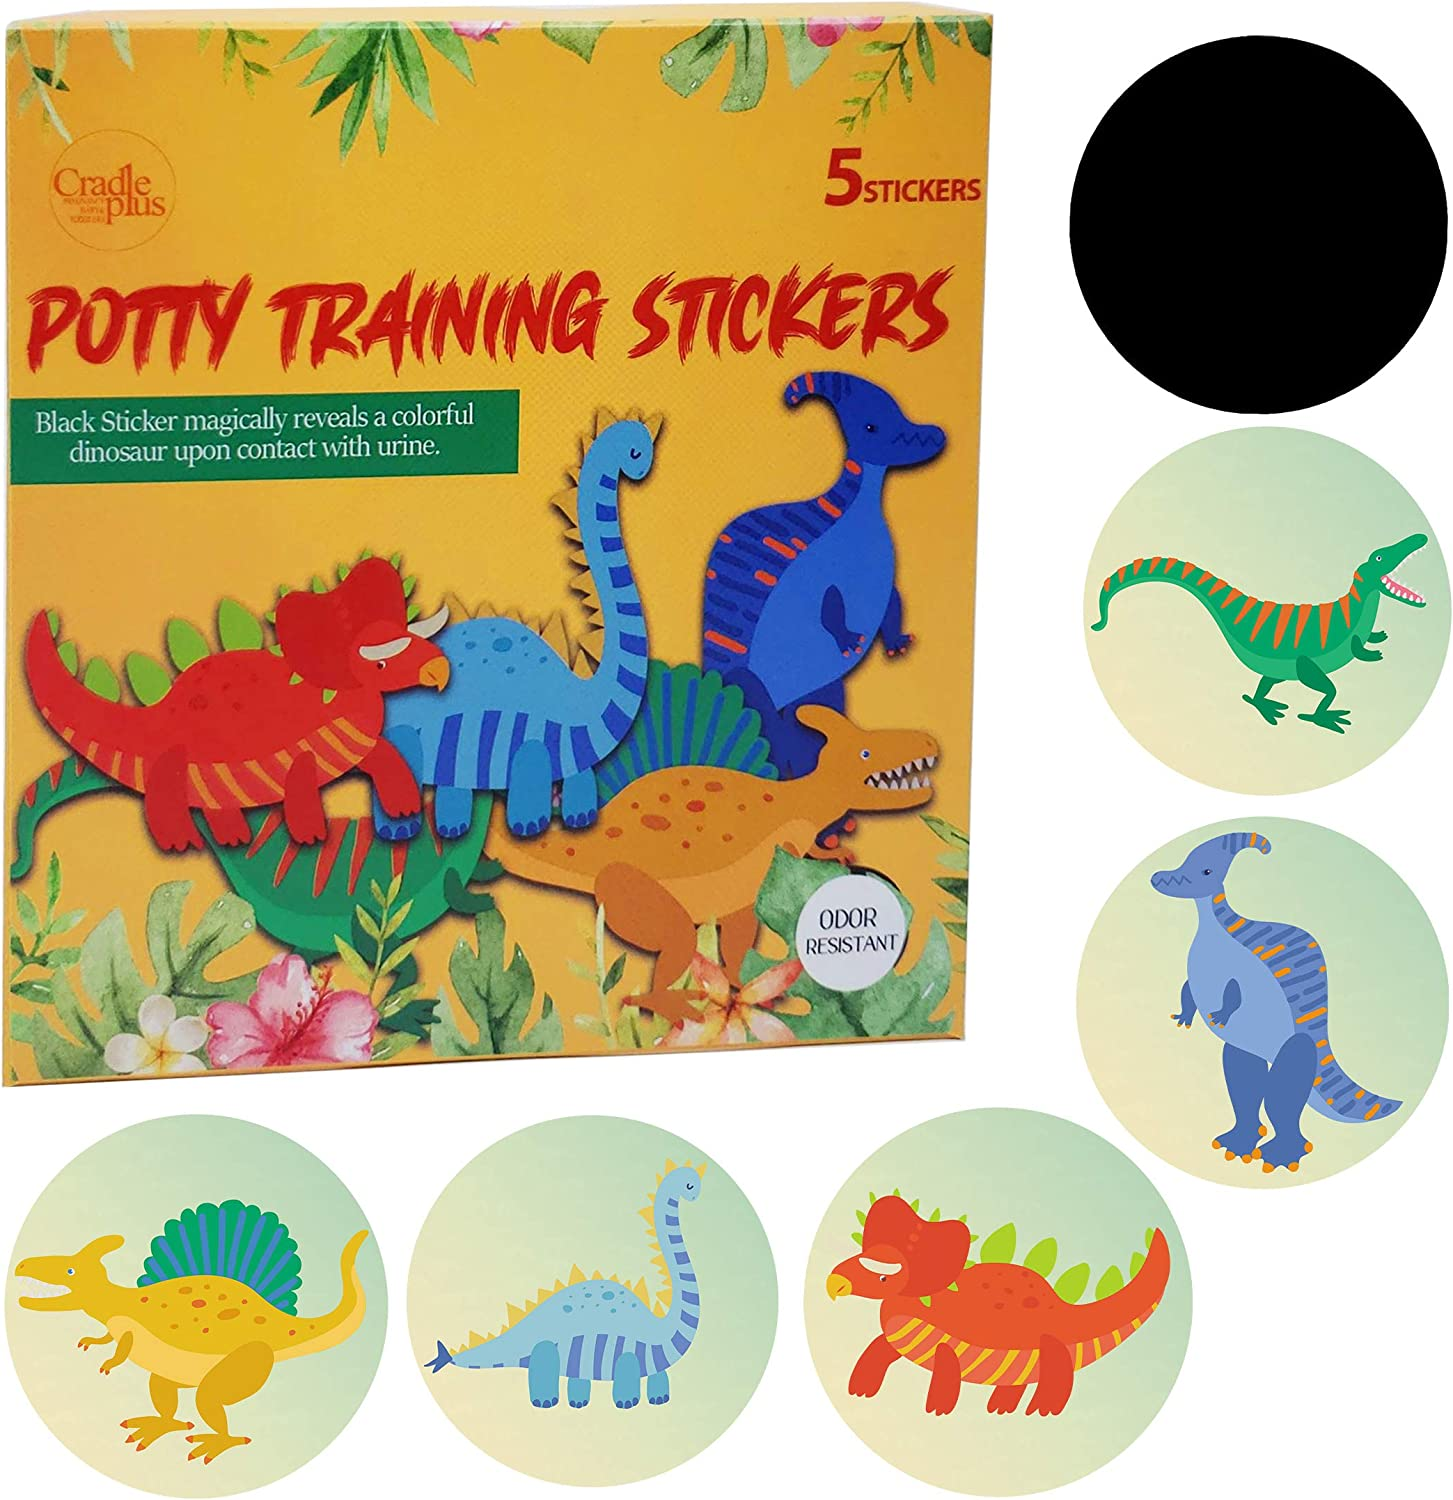 Potty Training Seat Magic Sticker Use with or without potty training Charts Potty training toilet color changing sticker 5 pack Dinosaur Stickers